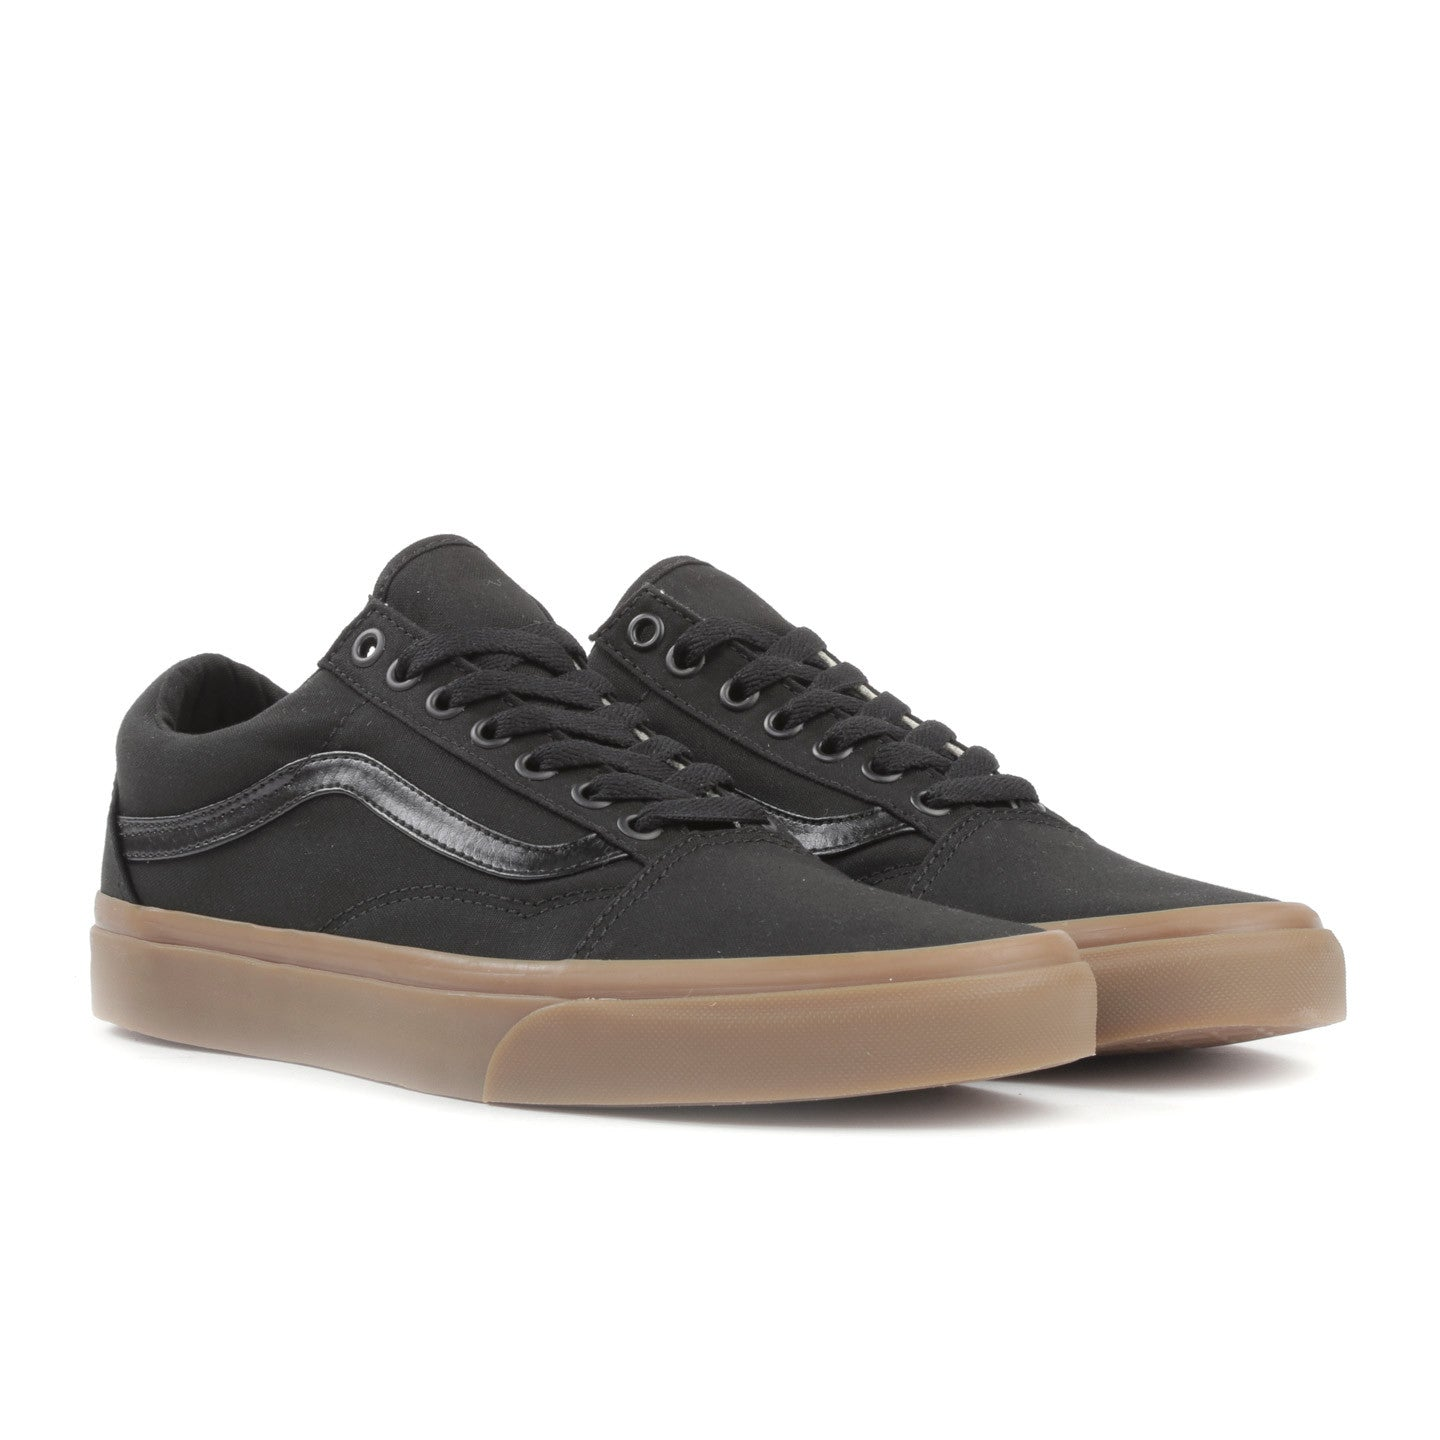 139c8e3a2dc VANS OLD SKOOL BLACK   GUM